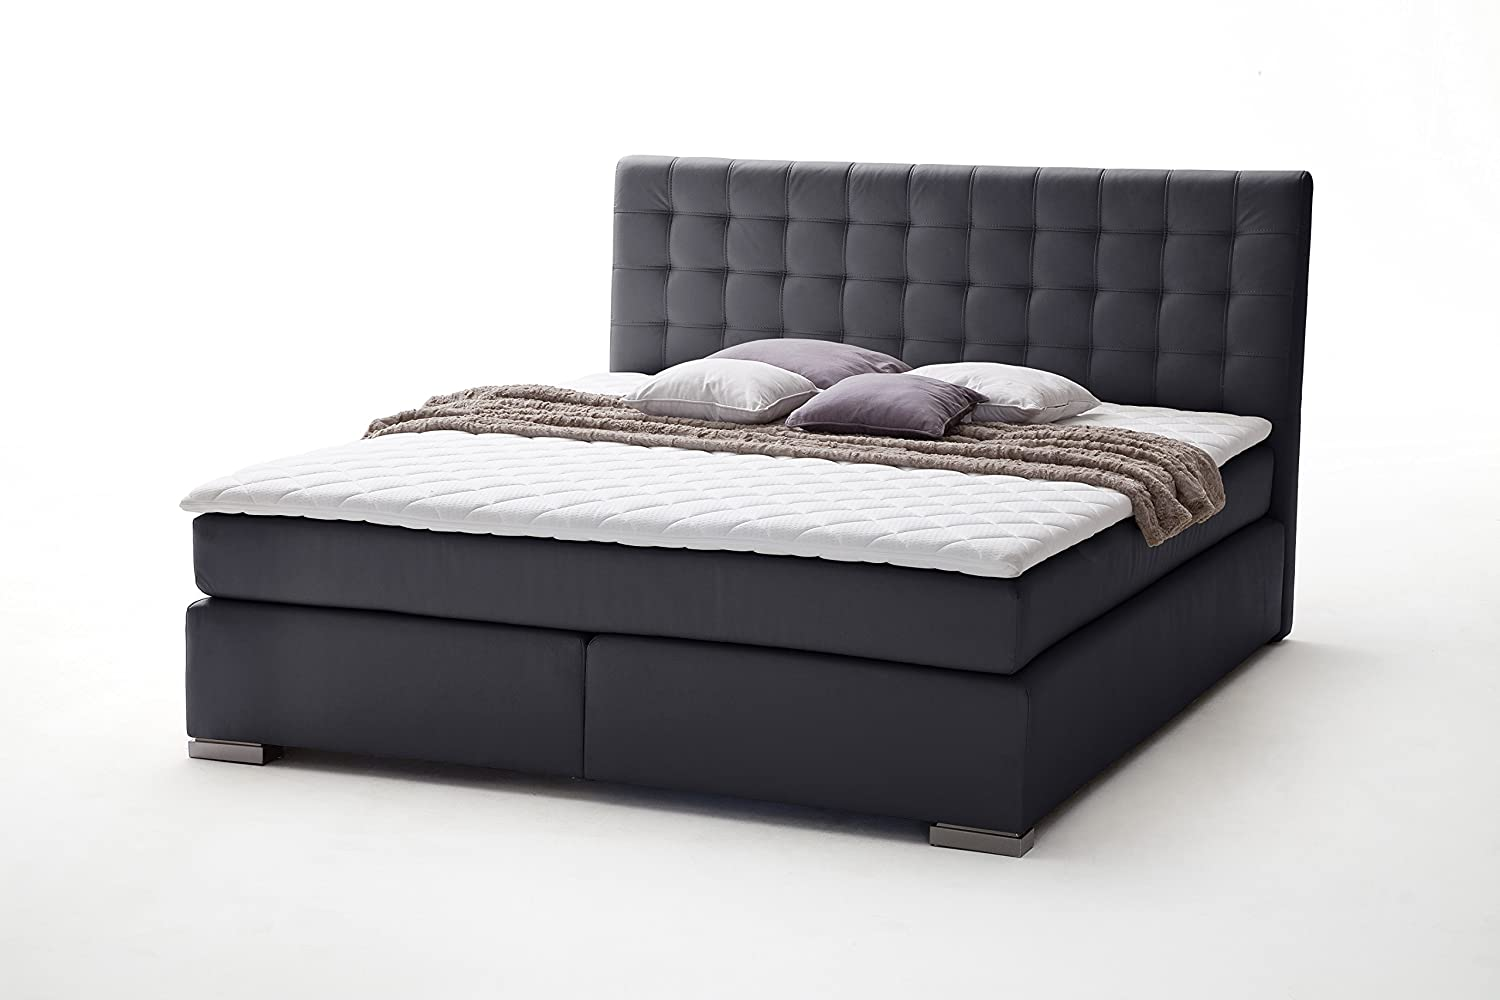 sette notti boxspringbett 200x200 schwarz boxspringbett. Black Bedroom Furniture Sets. Home Design Ideas